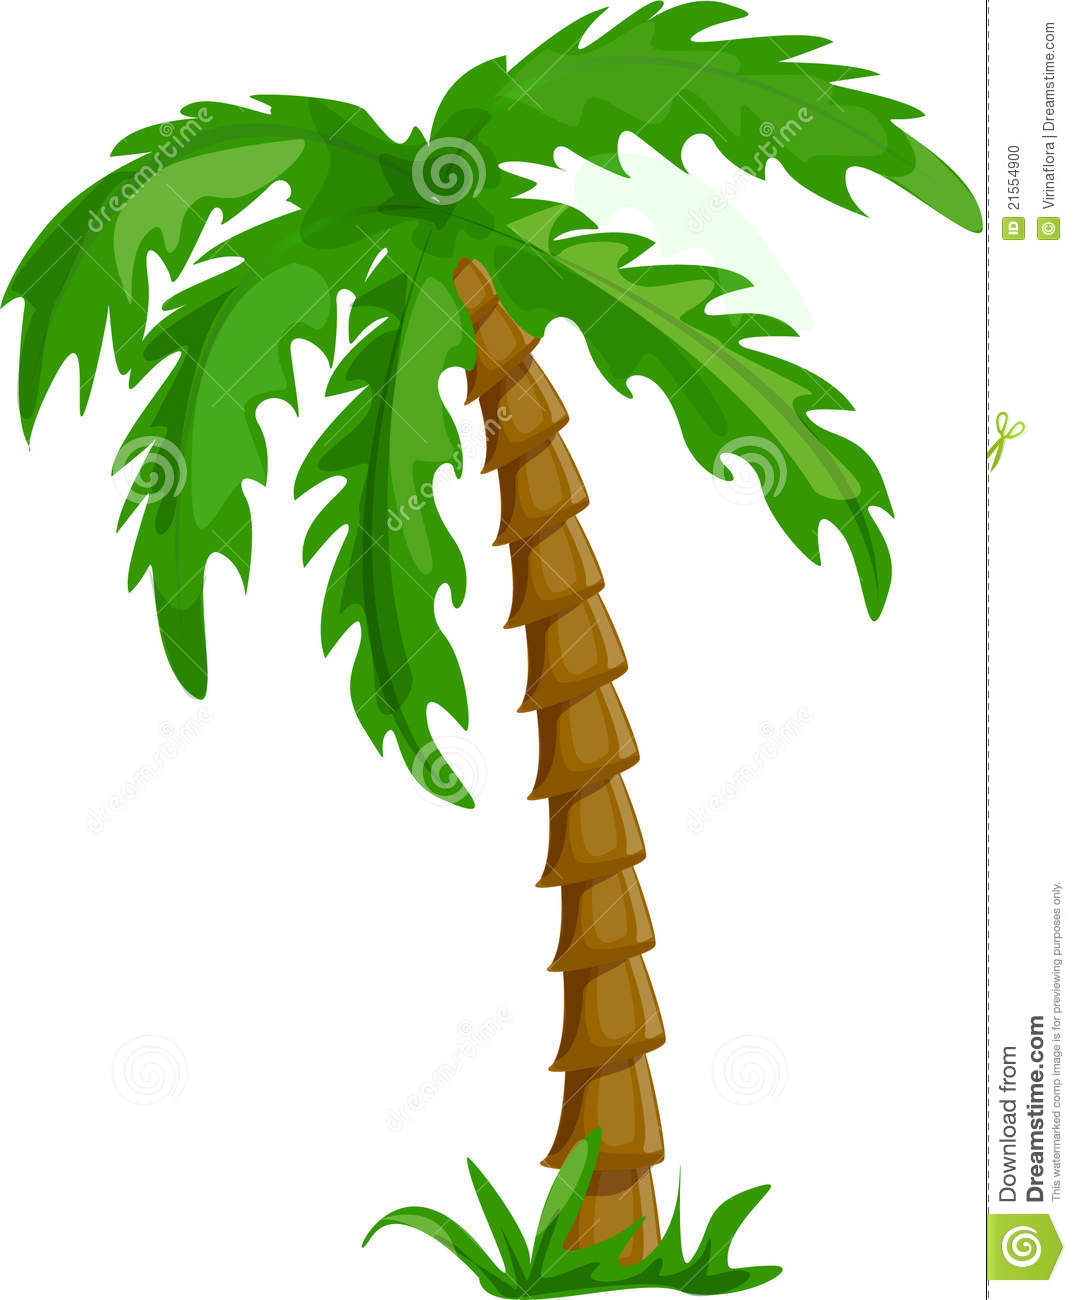 Jungle Background Clipart | Free download on ClipArtMag